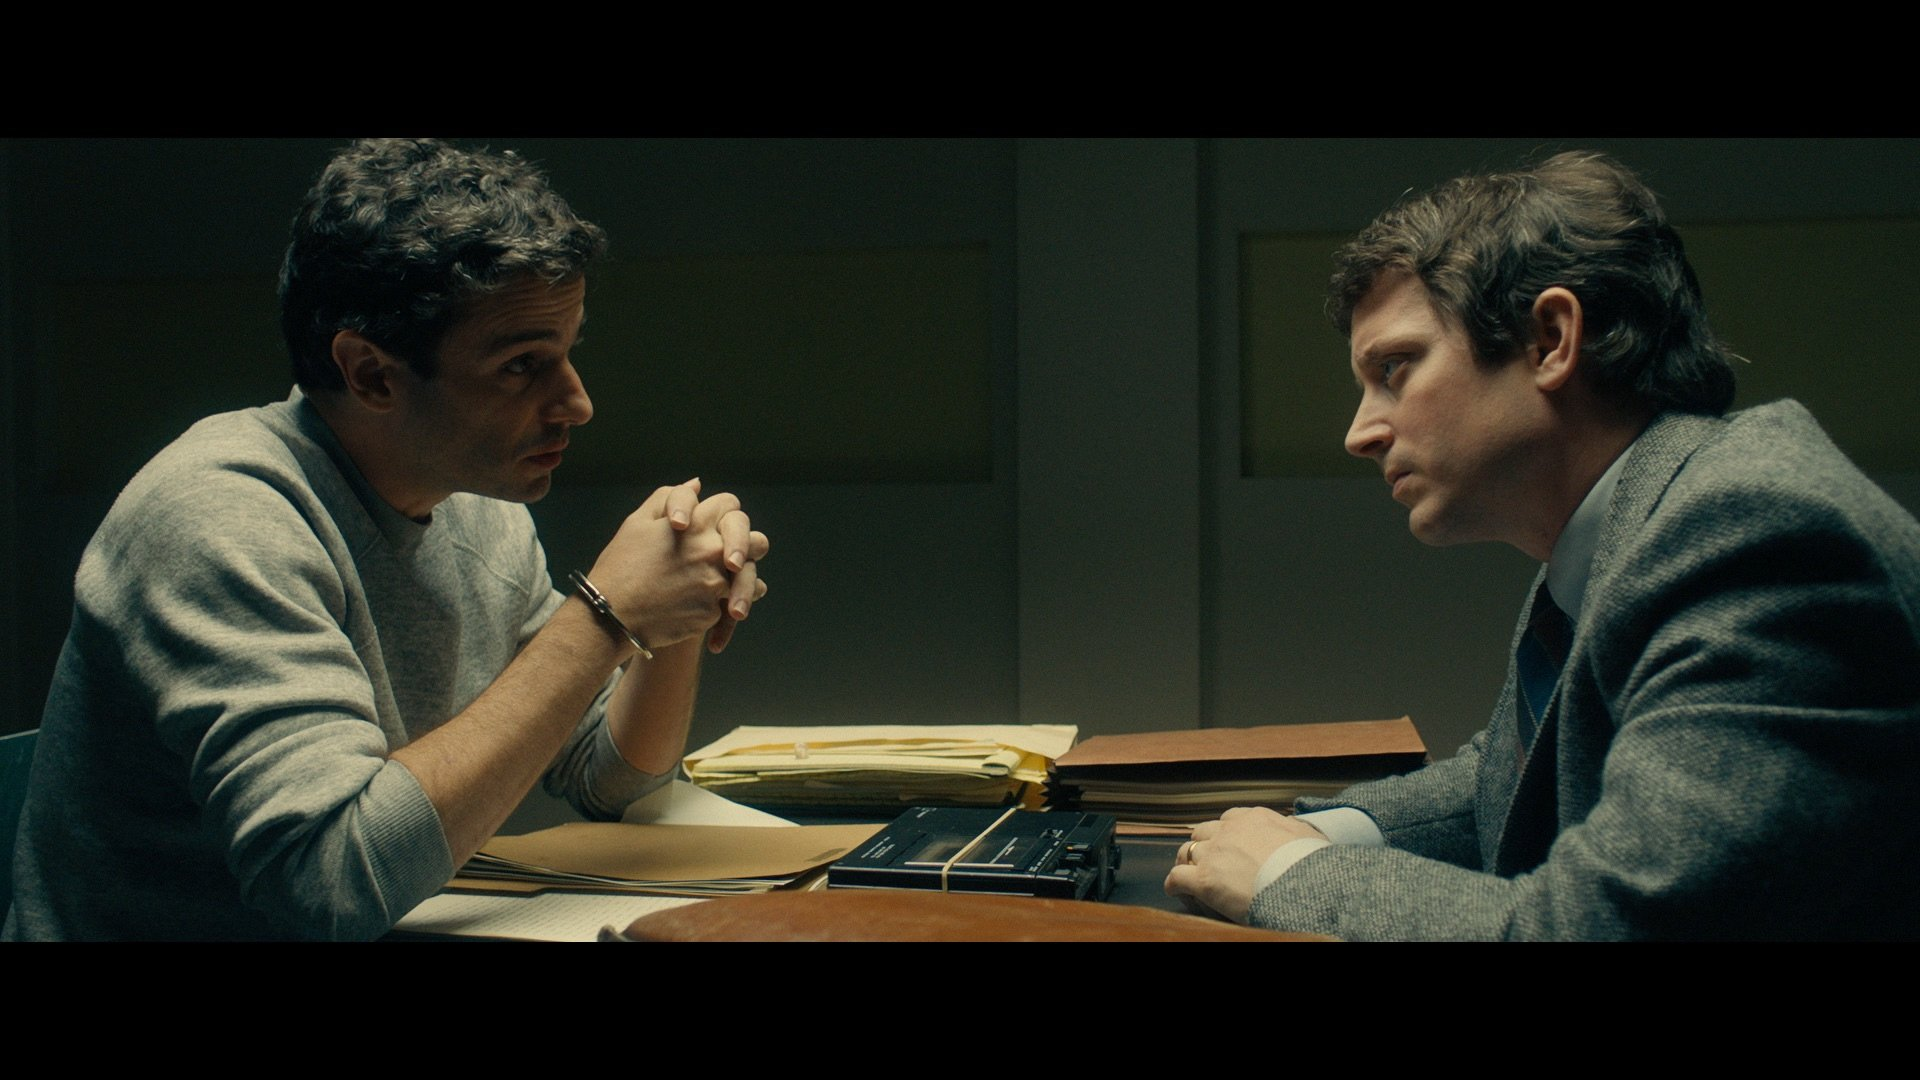 RLJE Acquires Rights to Ted Bundy Thriller No Man of God